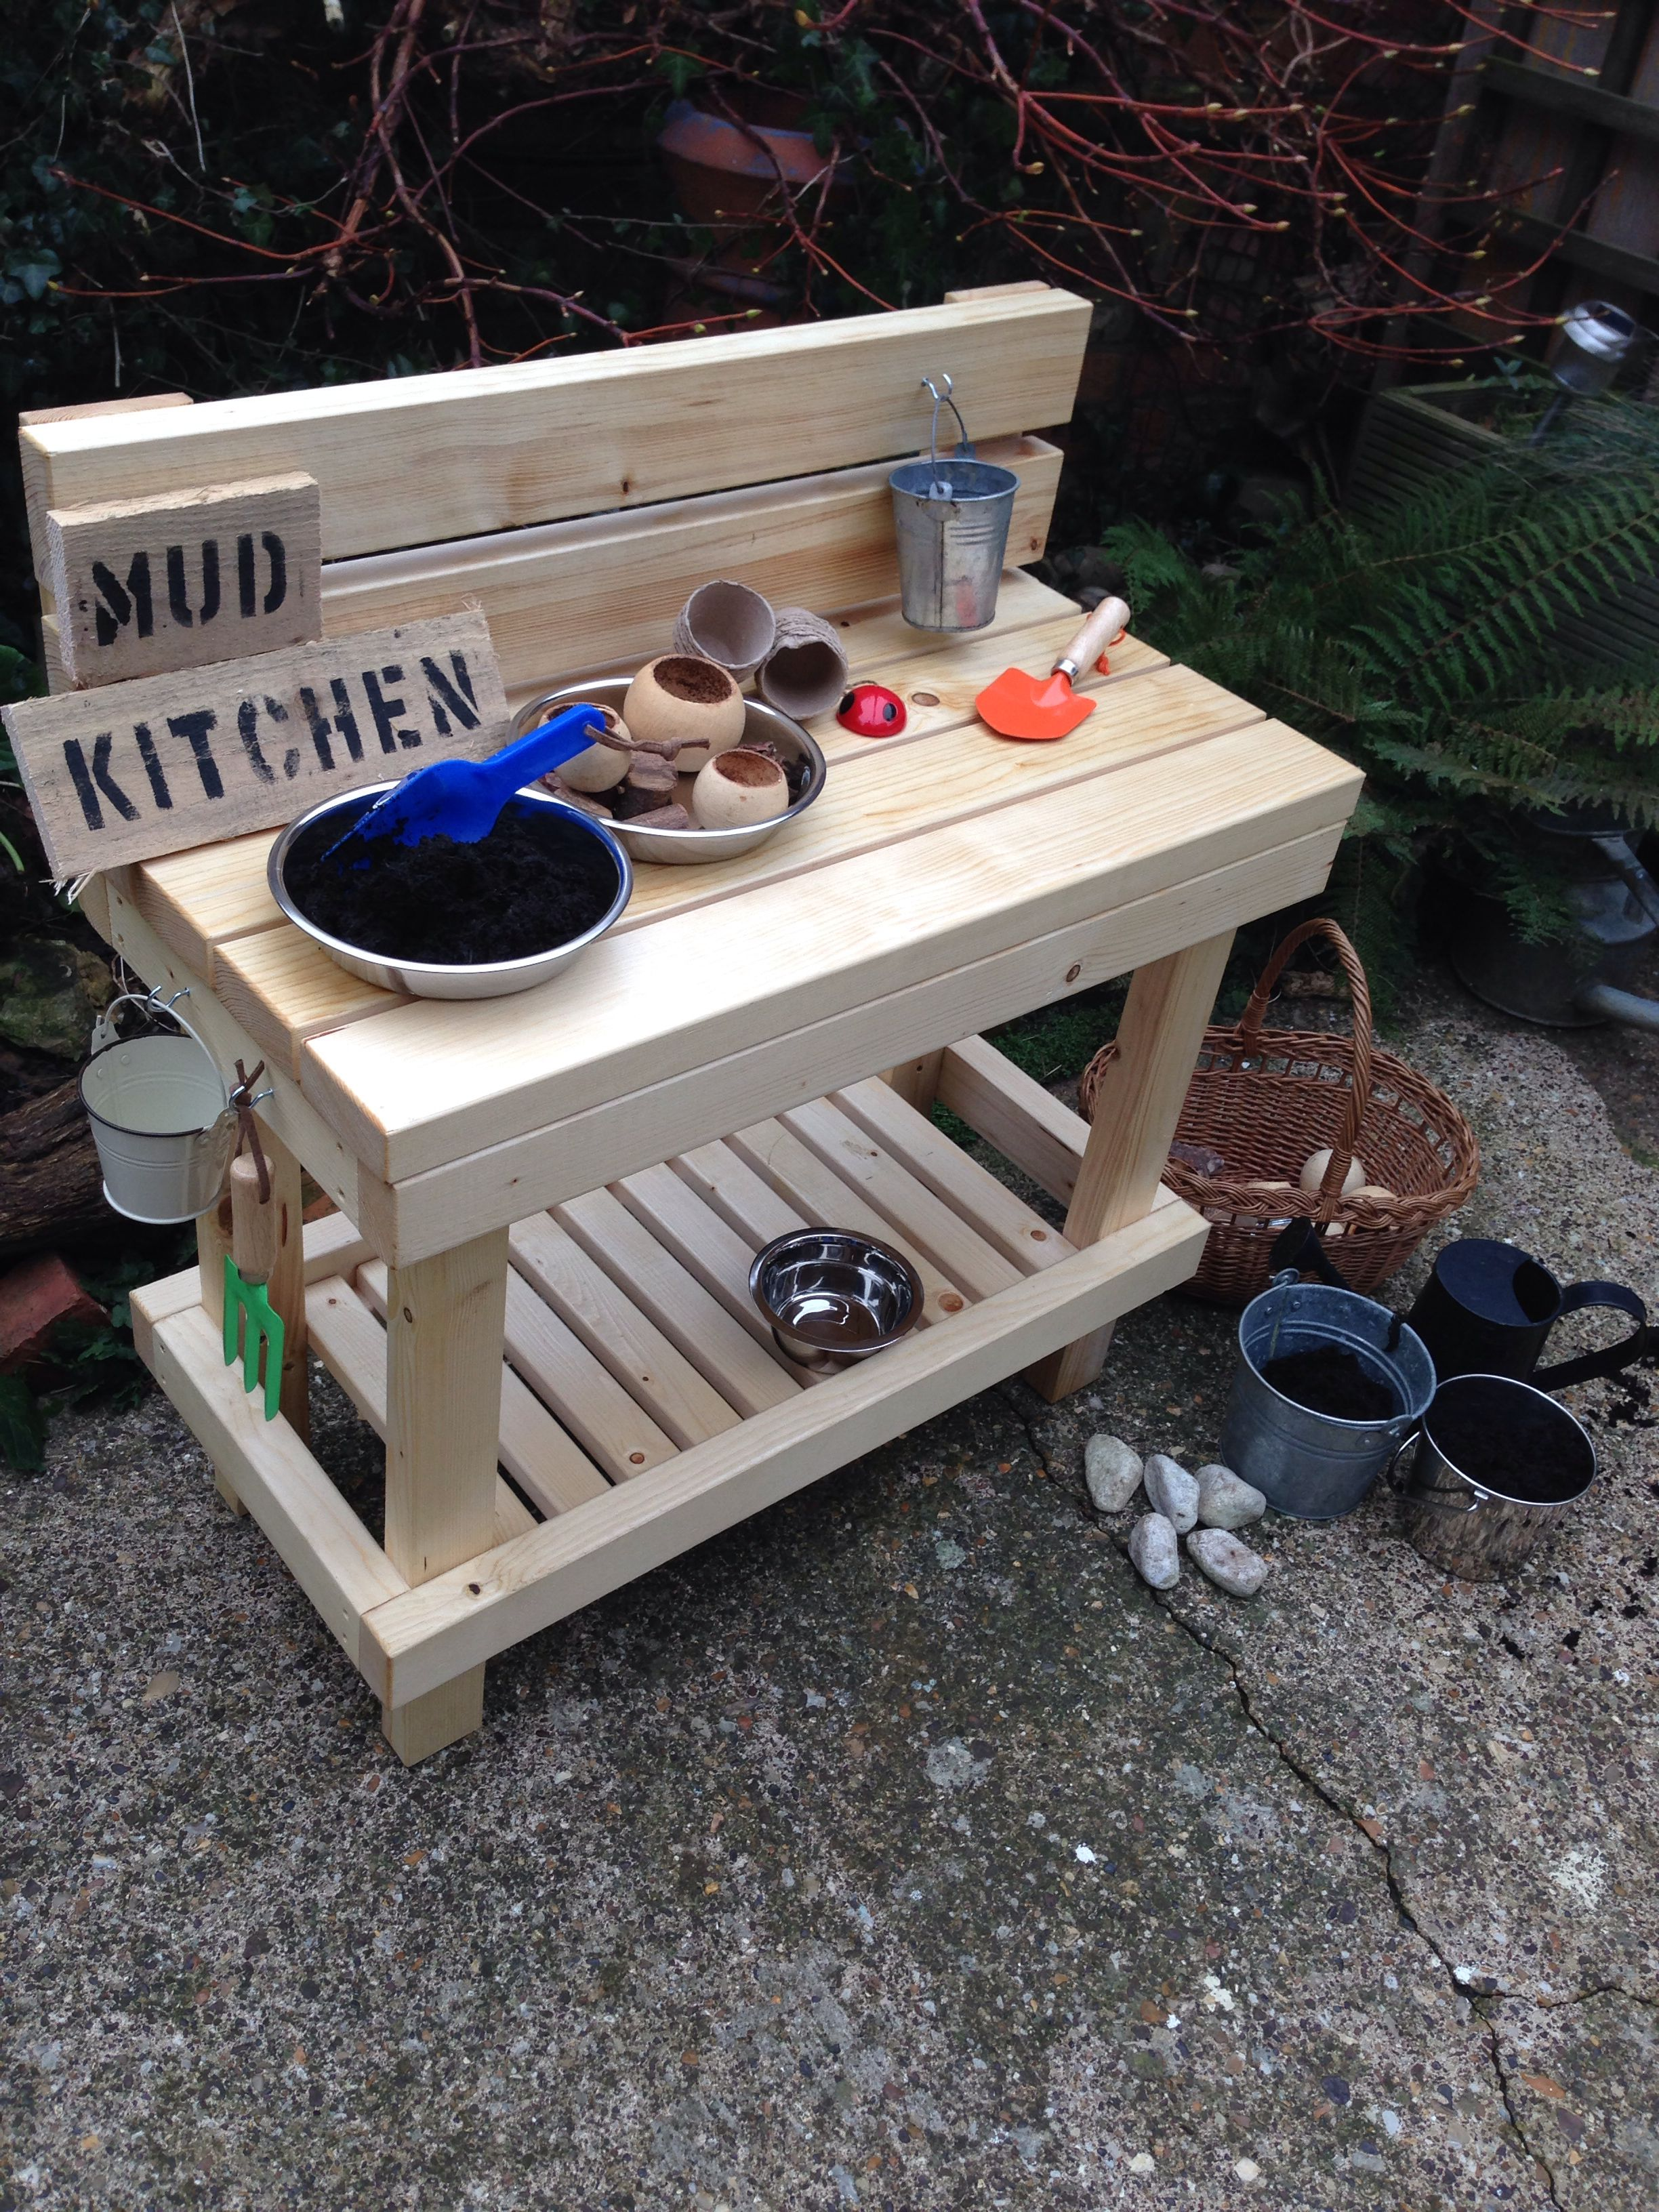 Mud kitchen imaginary outdoor play solid wood protected